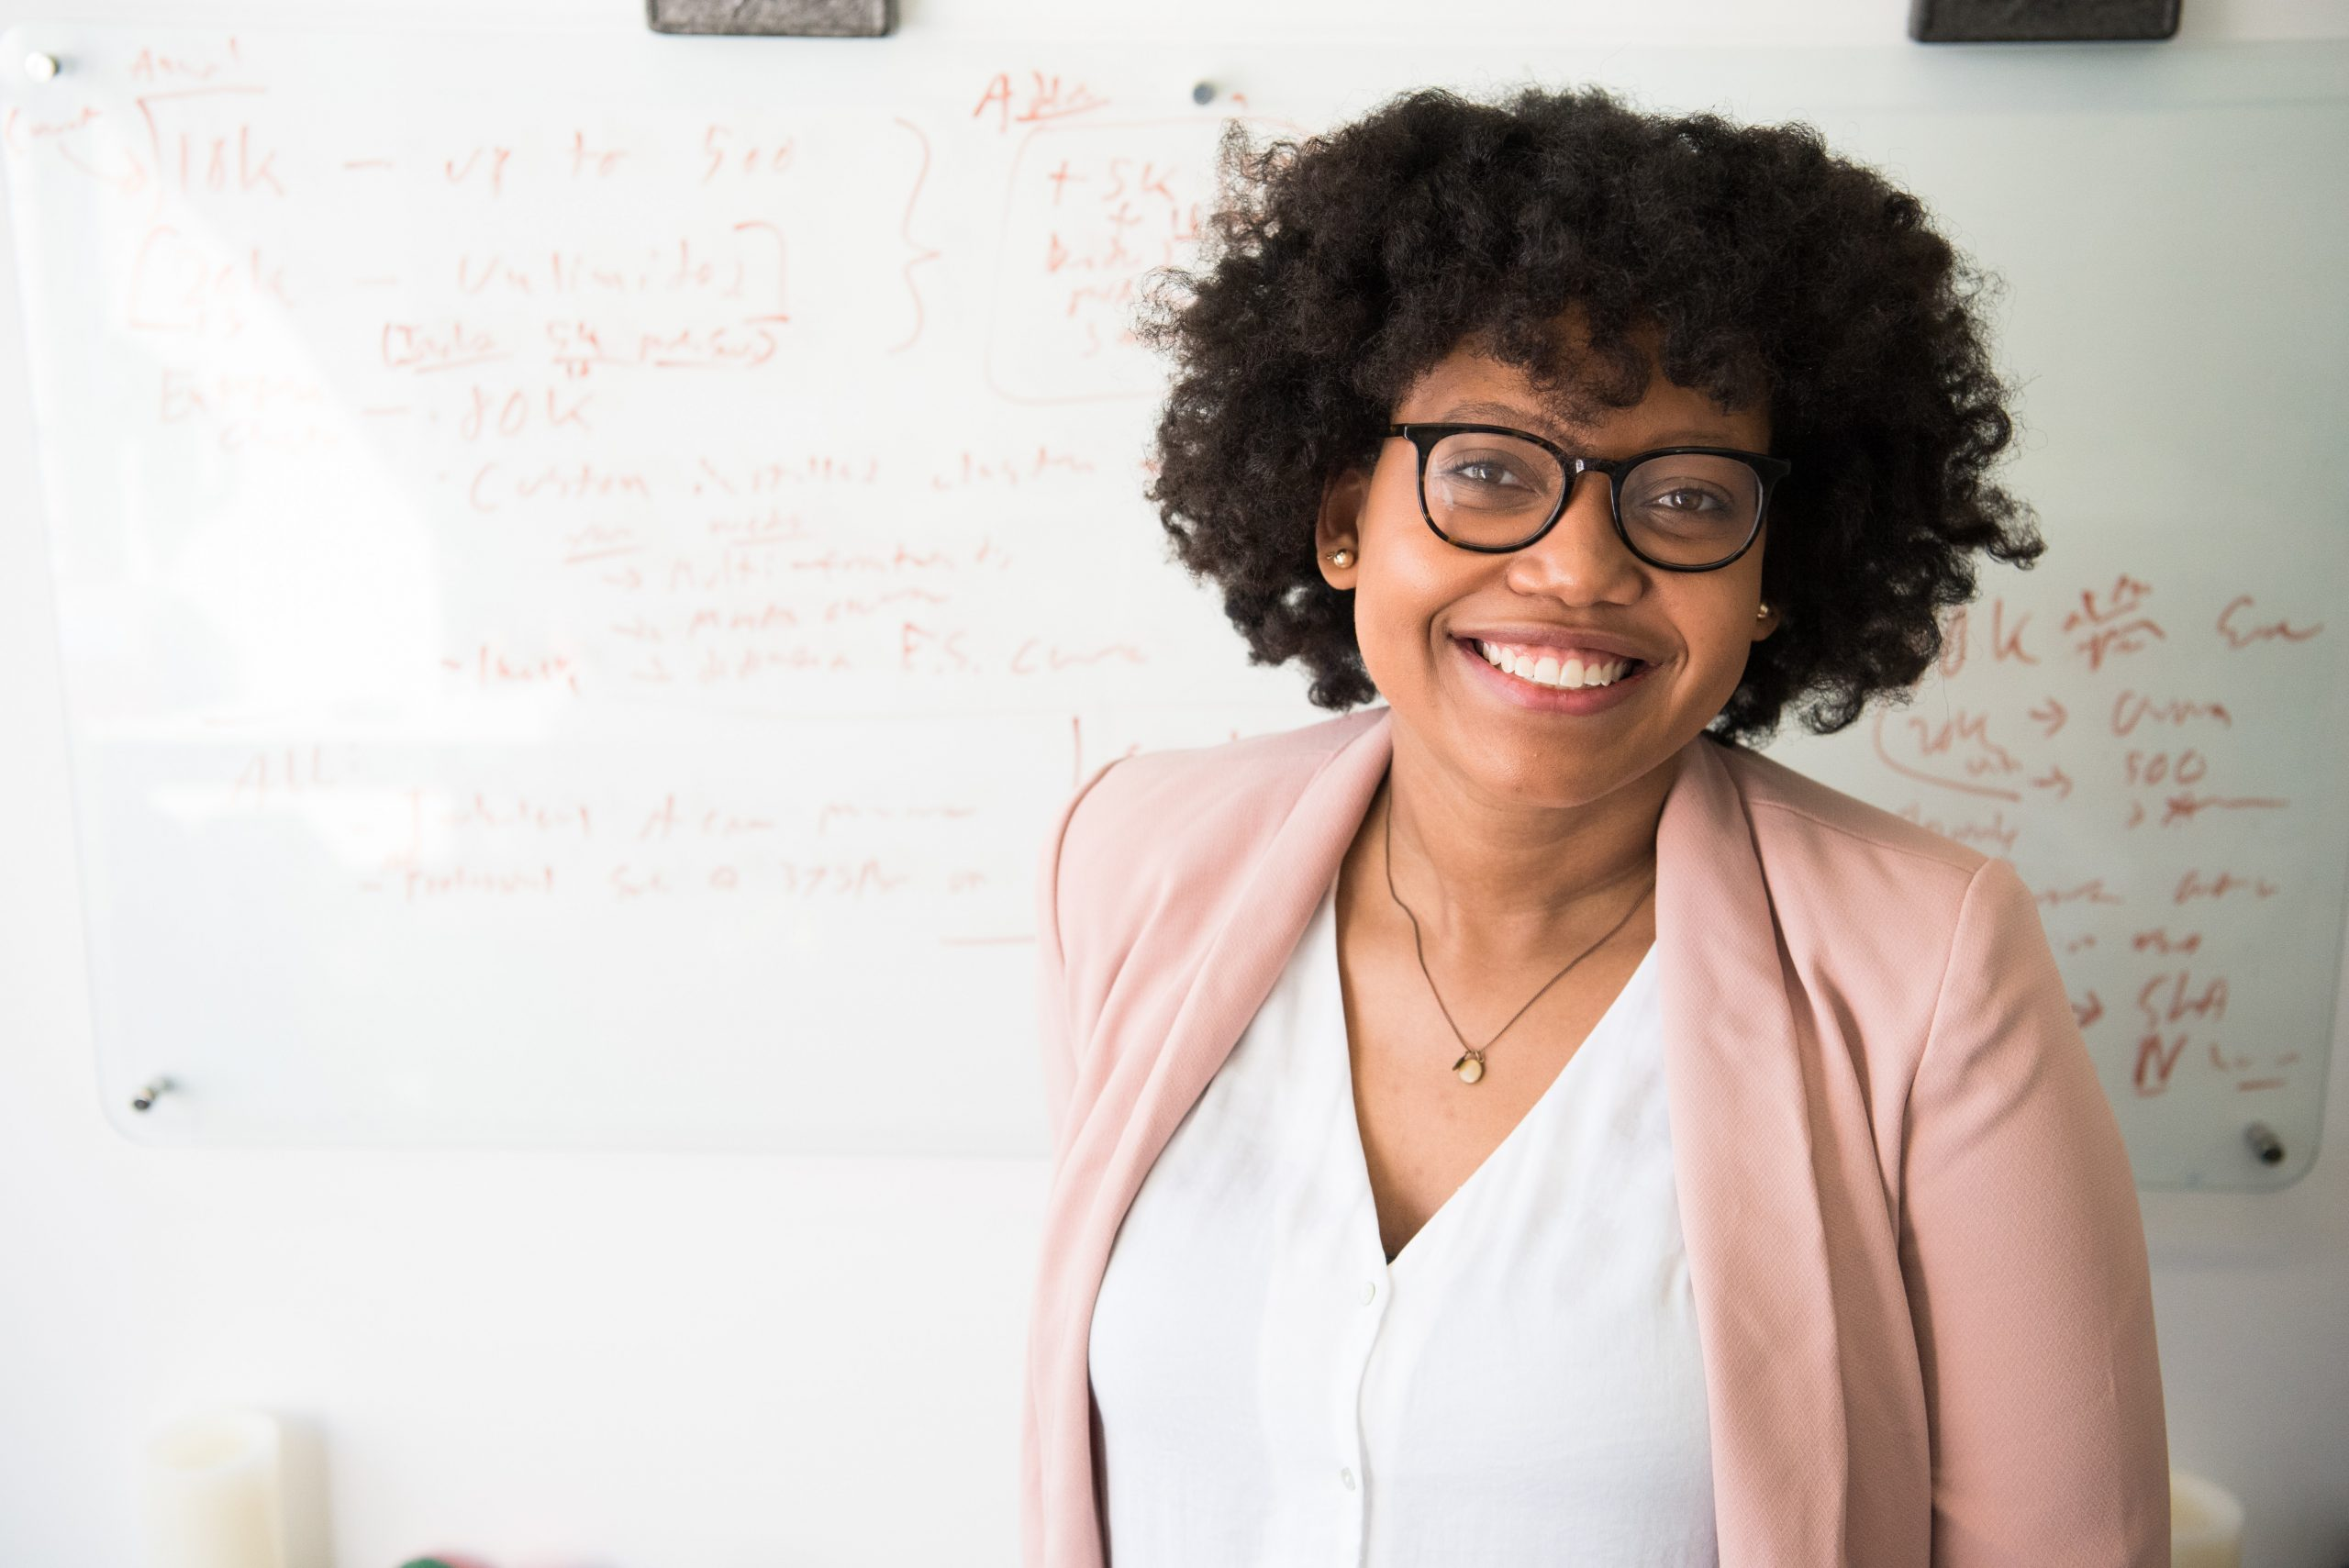 Female, African-American Professor smiles in front of a whiteboard covered with mathematical notations